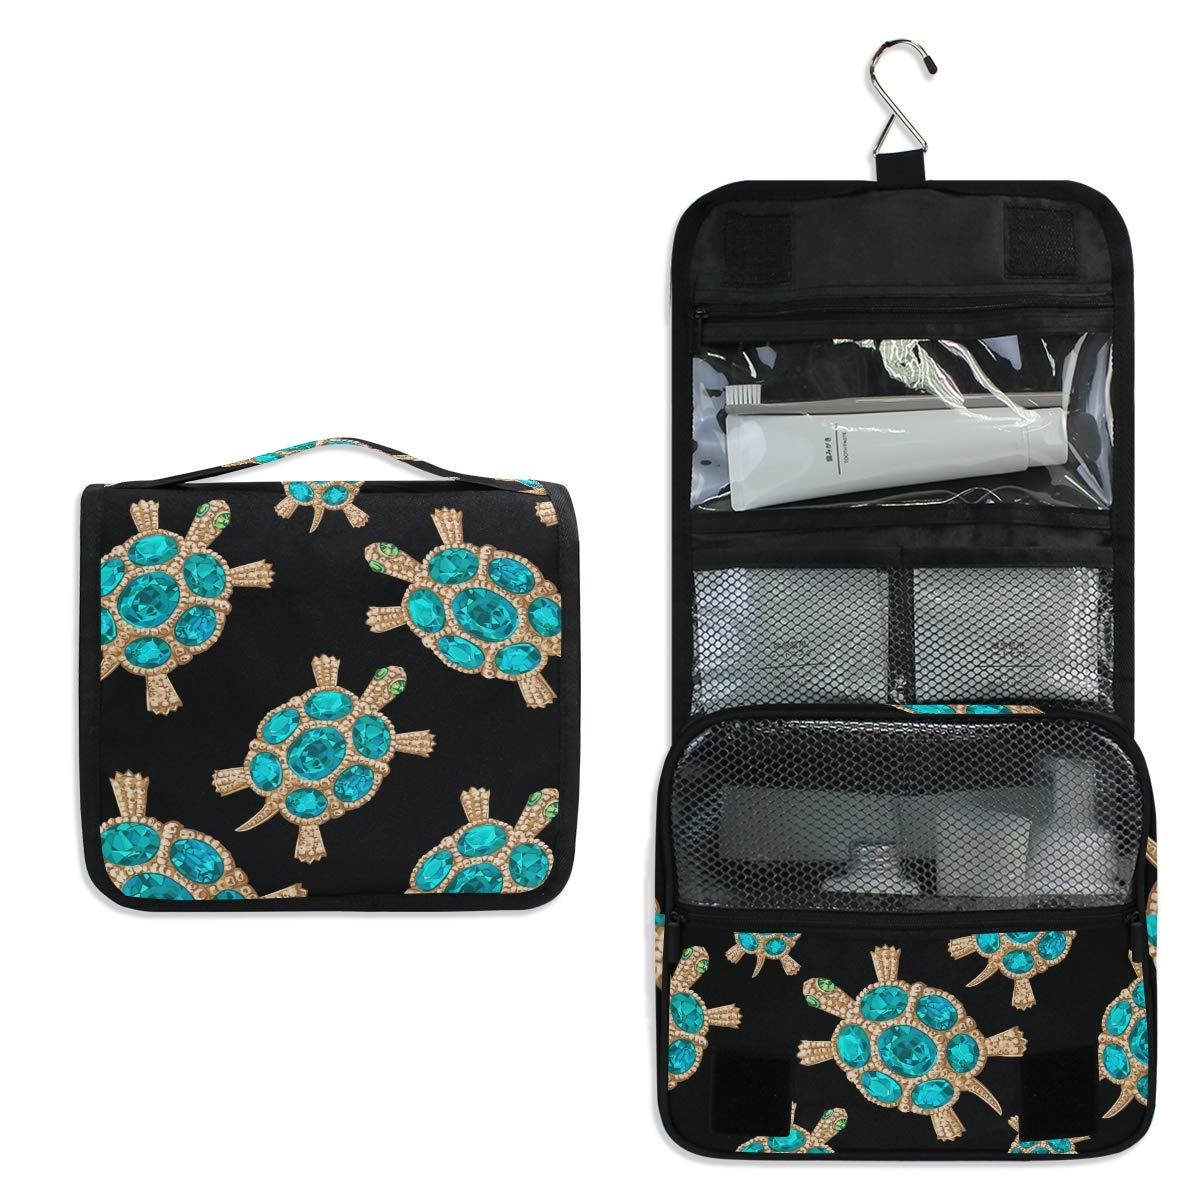 Hanging Travel Toiletry Bag - Jewelry Turtle Waterproof Cosmetic Bag Portable Makeup Pouch for Bathroom Toiletries